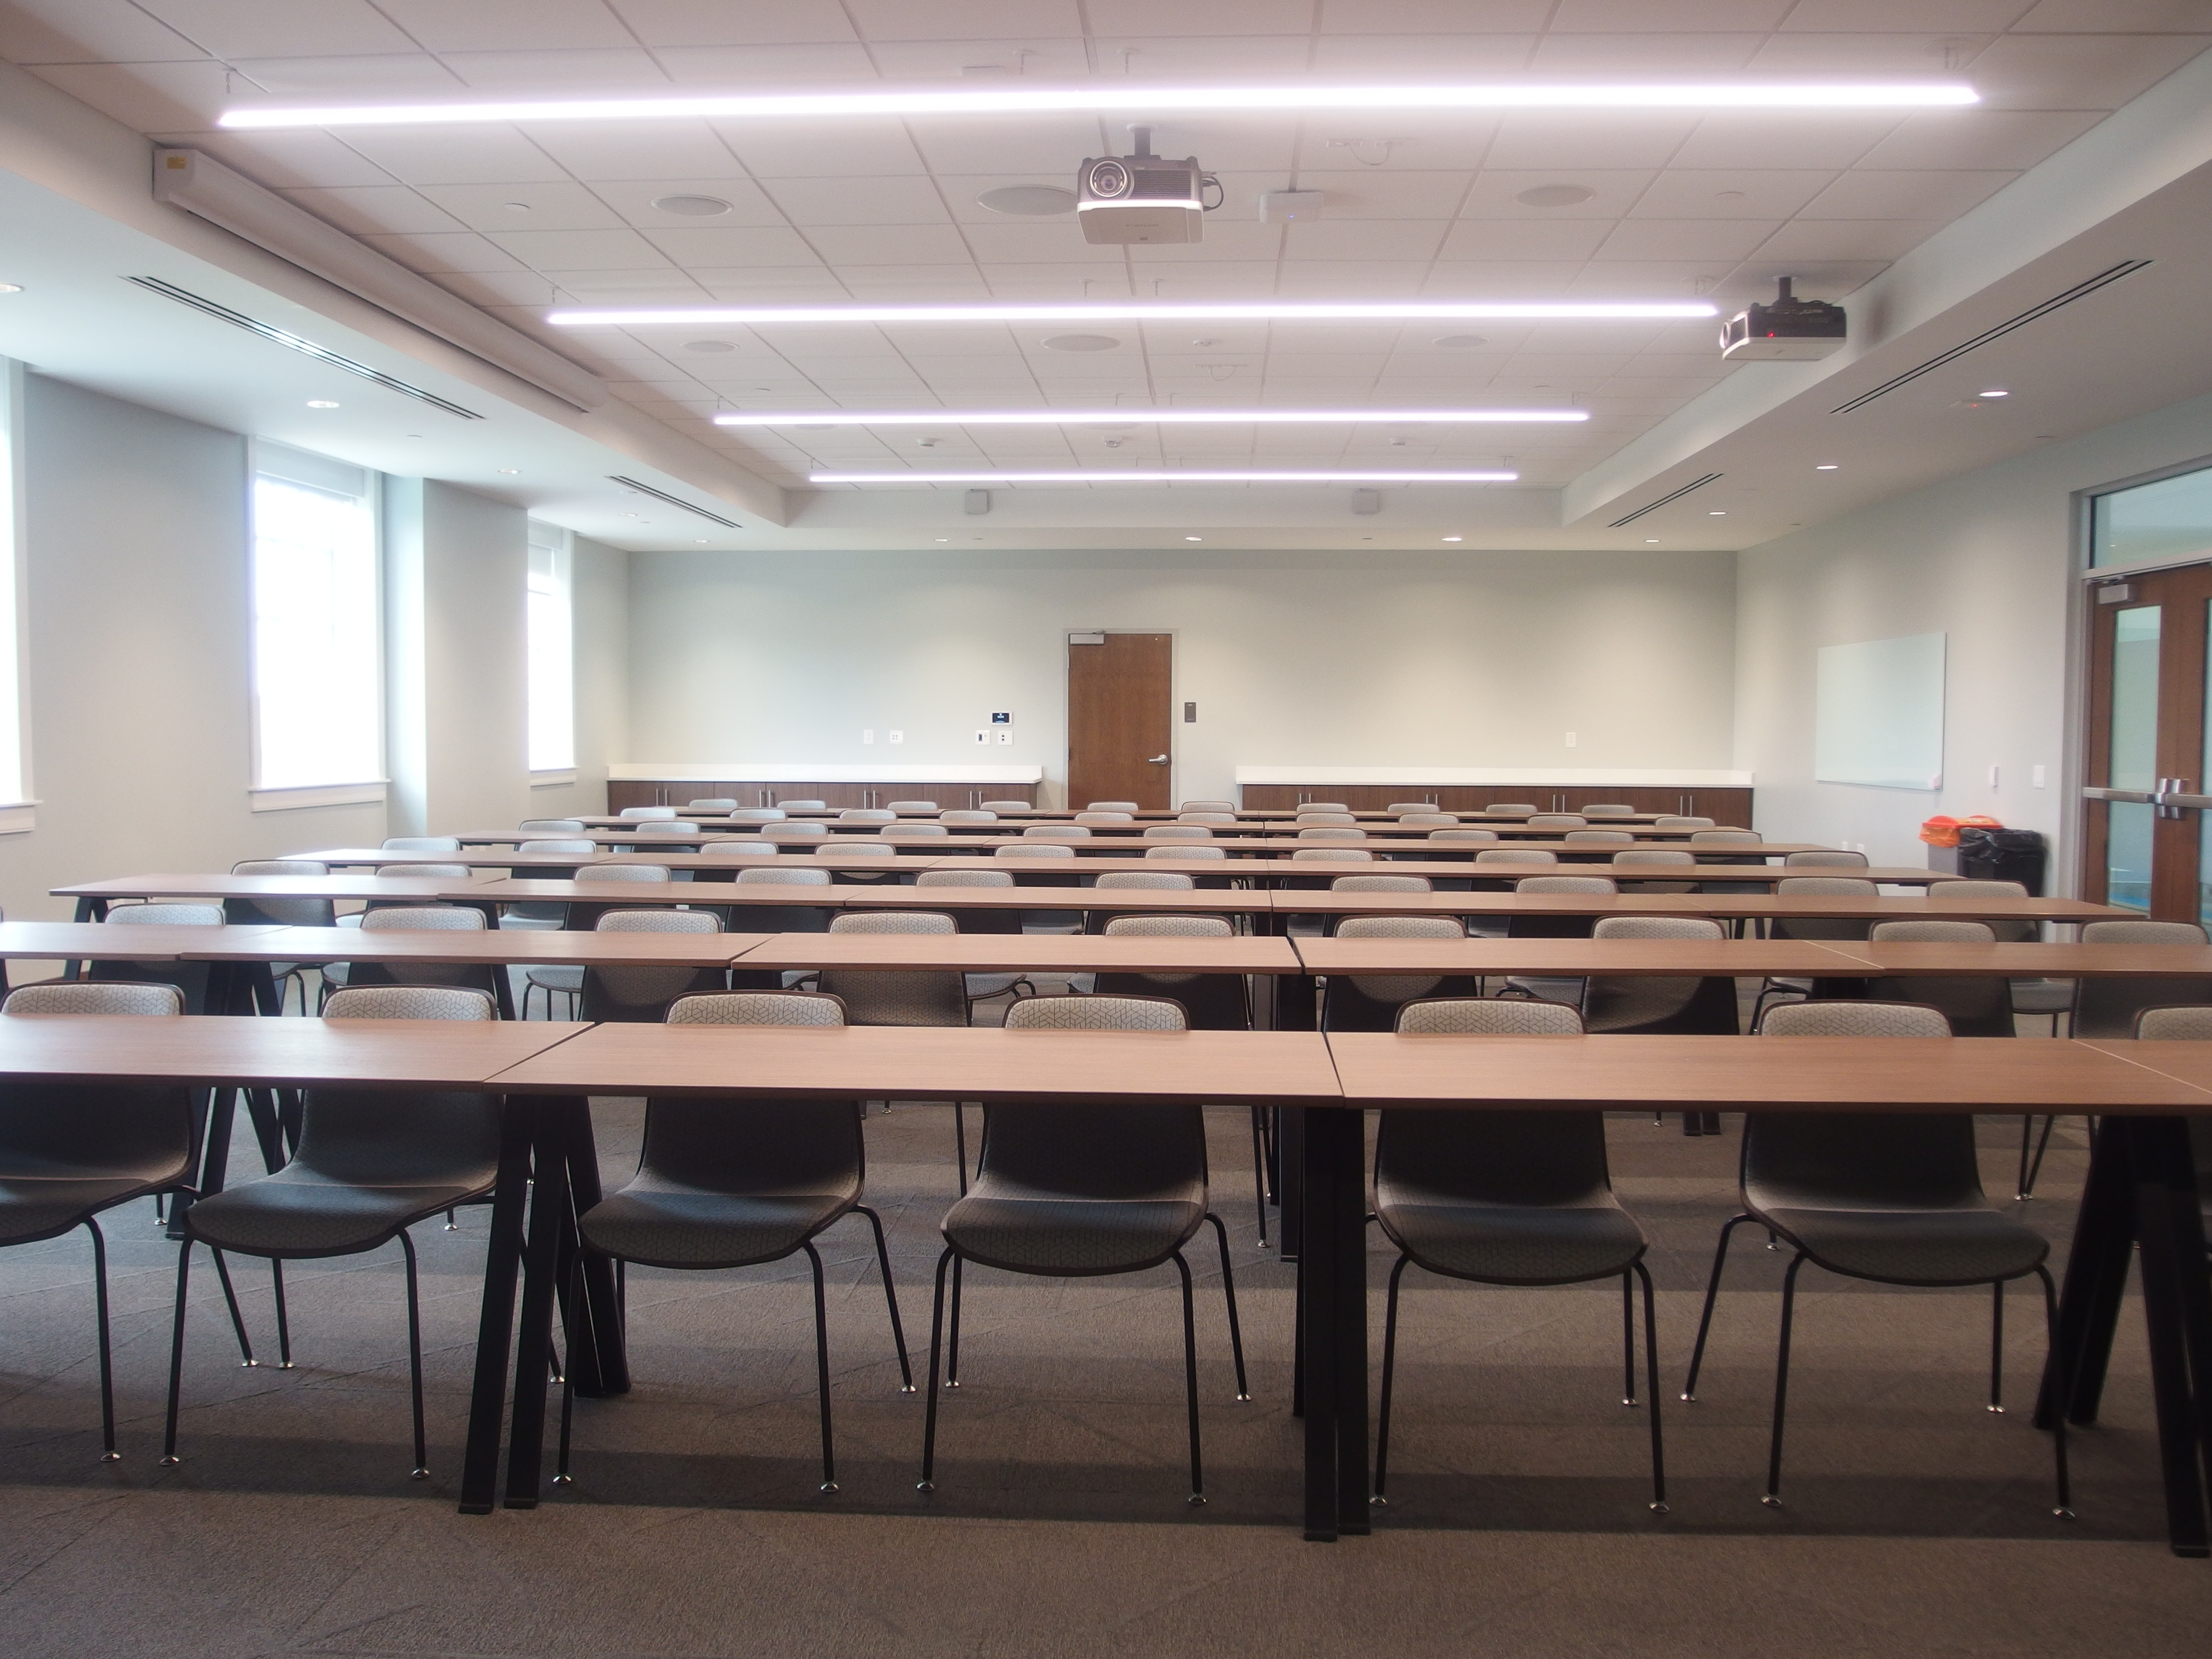 Picture of Sankey 308 from the front of the room.